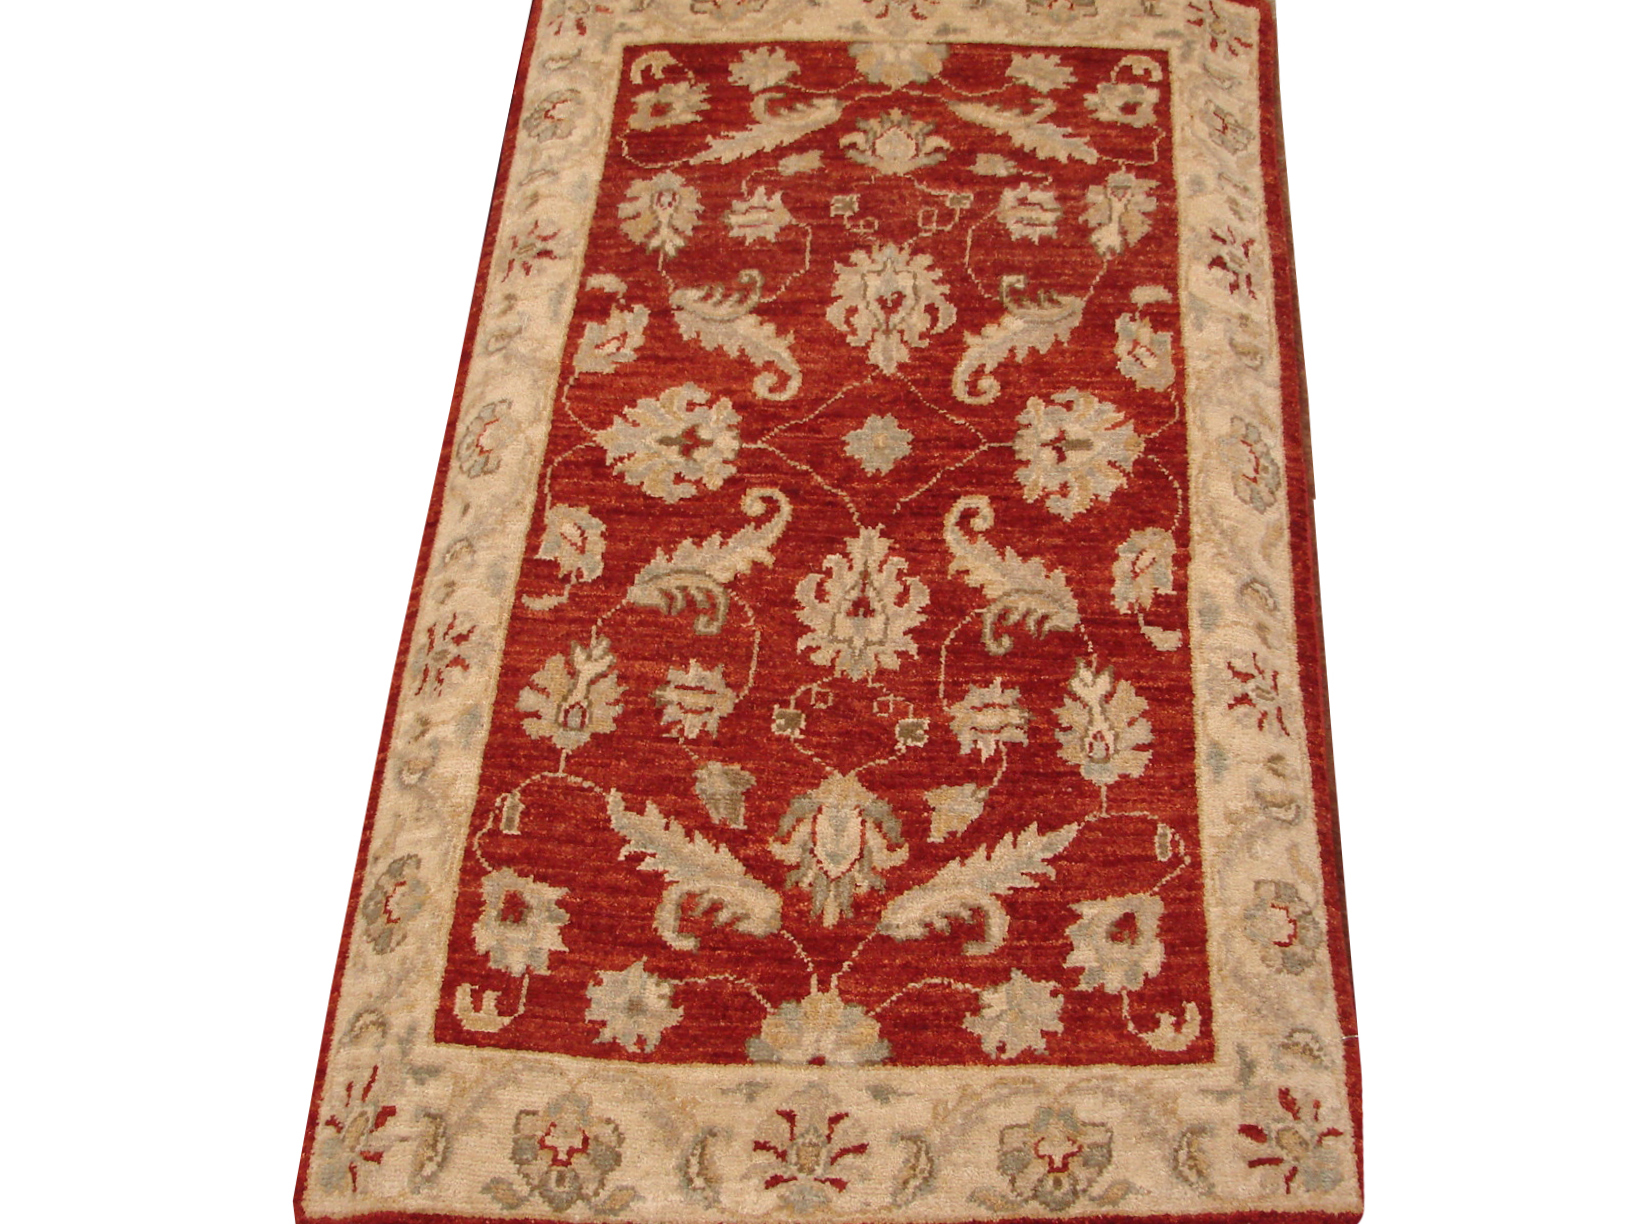 2X4 Peshawar Hand Knotted Wool Area Rug - MR14441